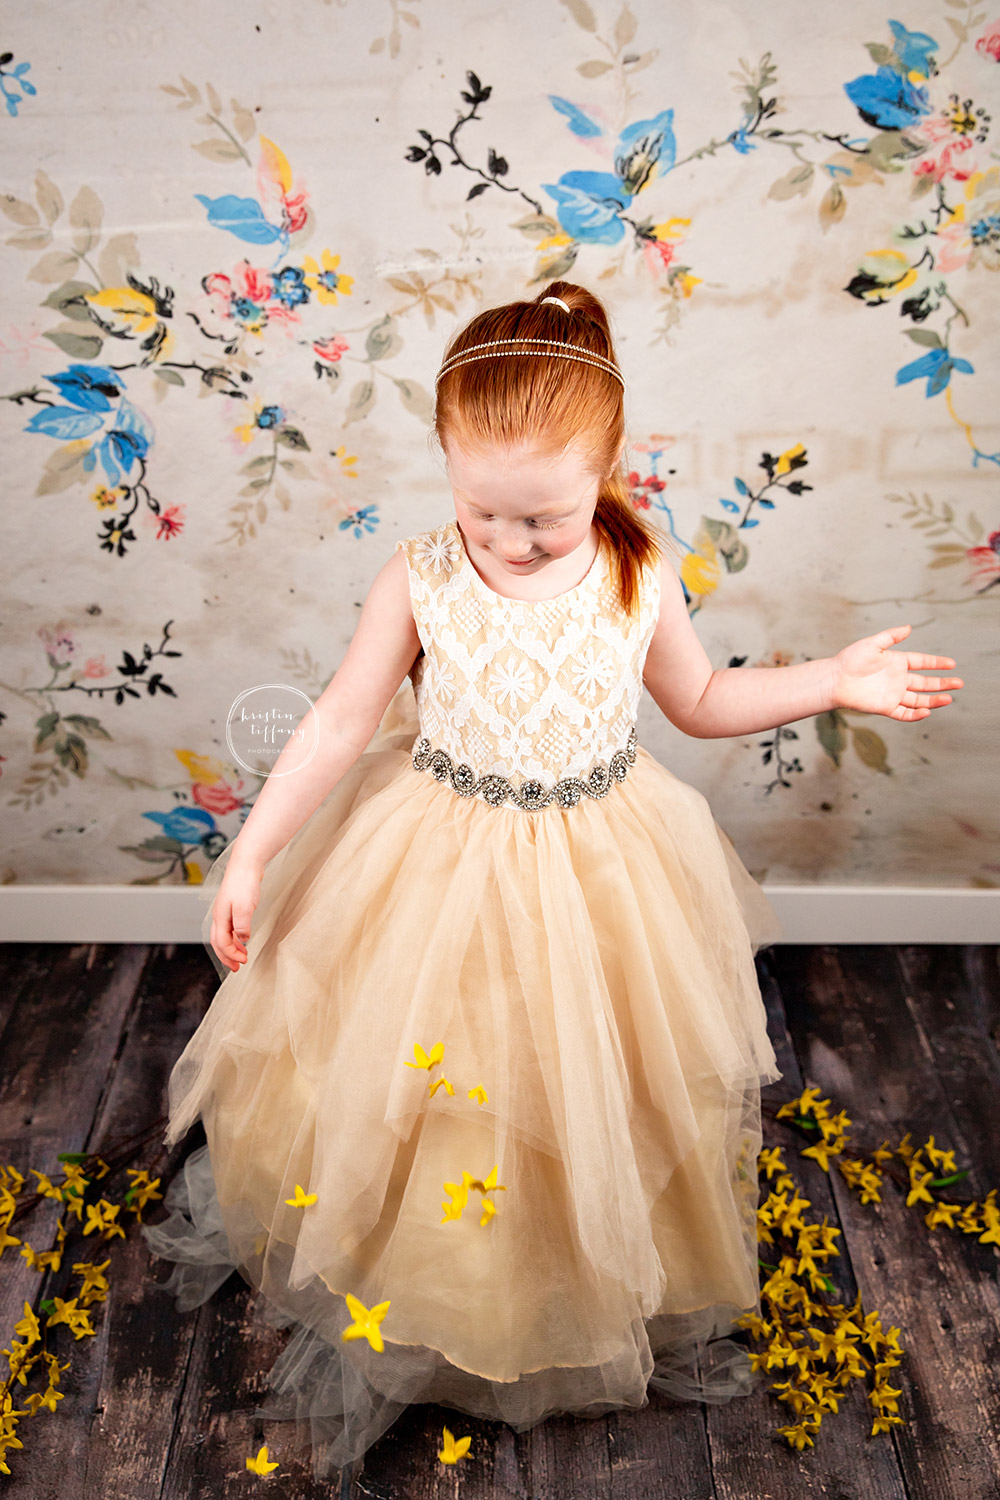 a photo from a kids photoshoot with Kristin Tiffany Photography